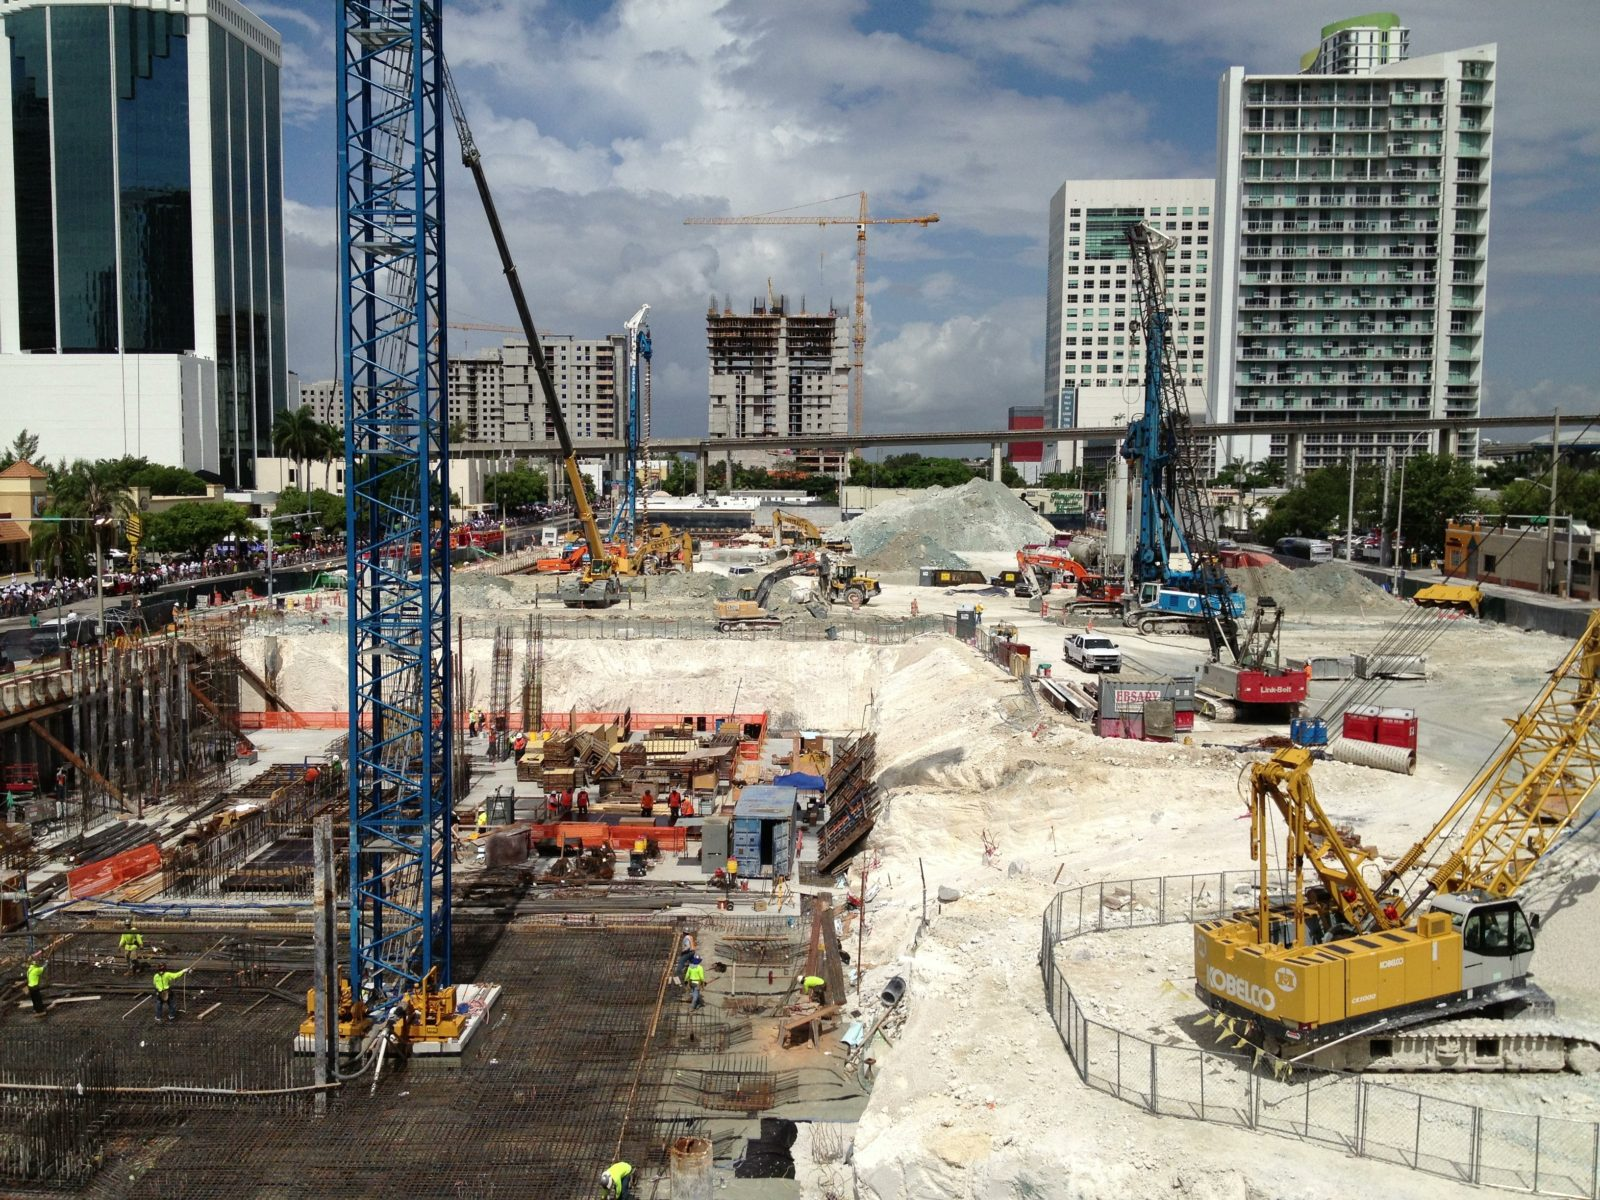 Brickell City Centre construction site with building behind